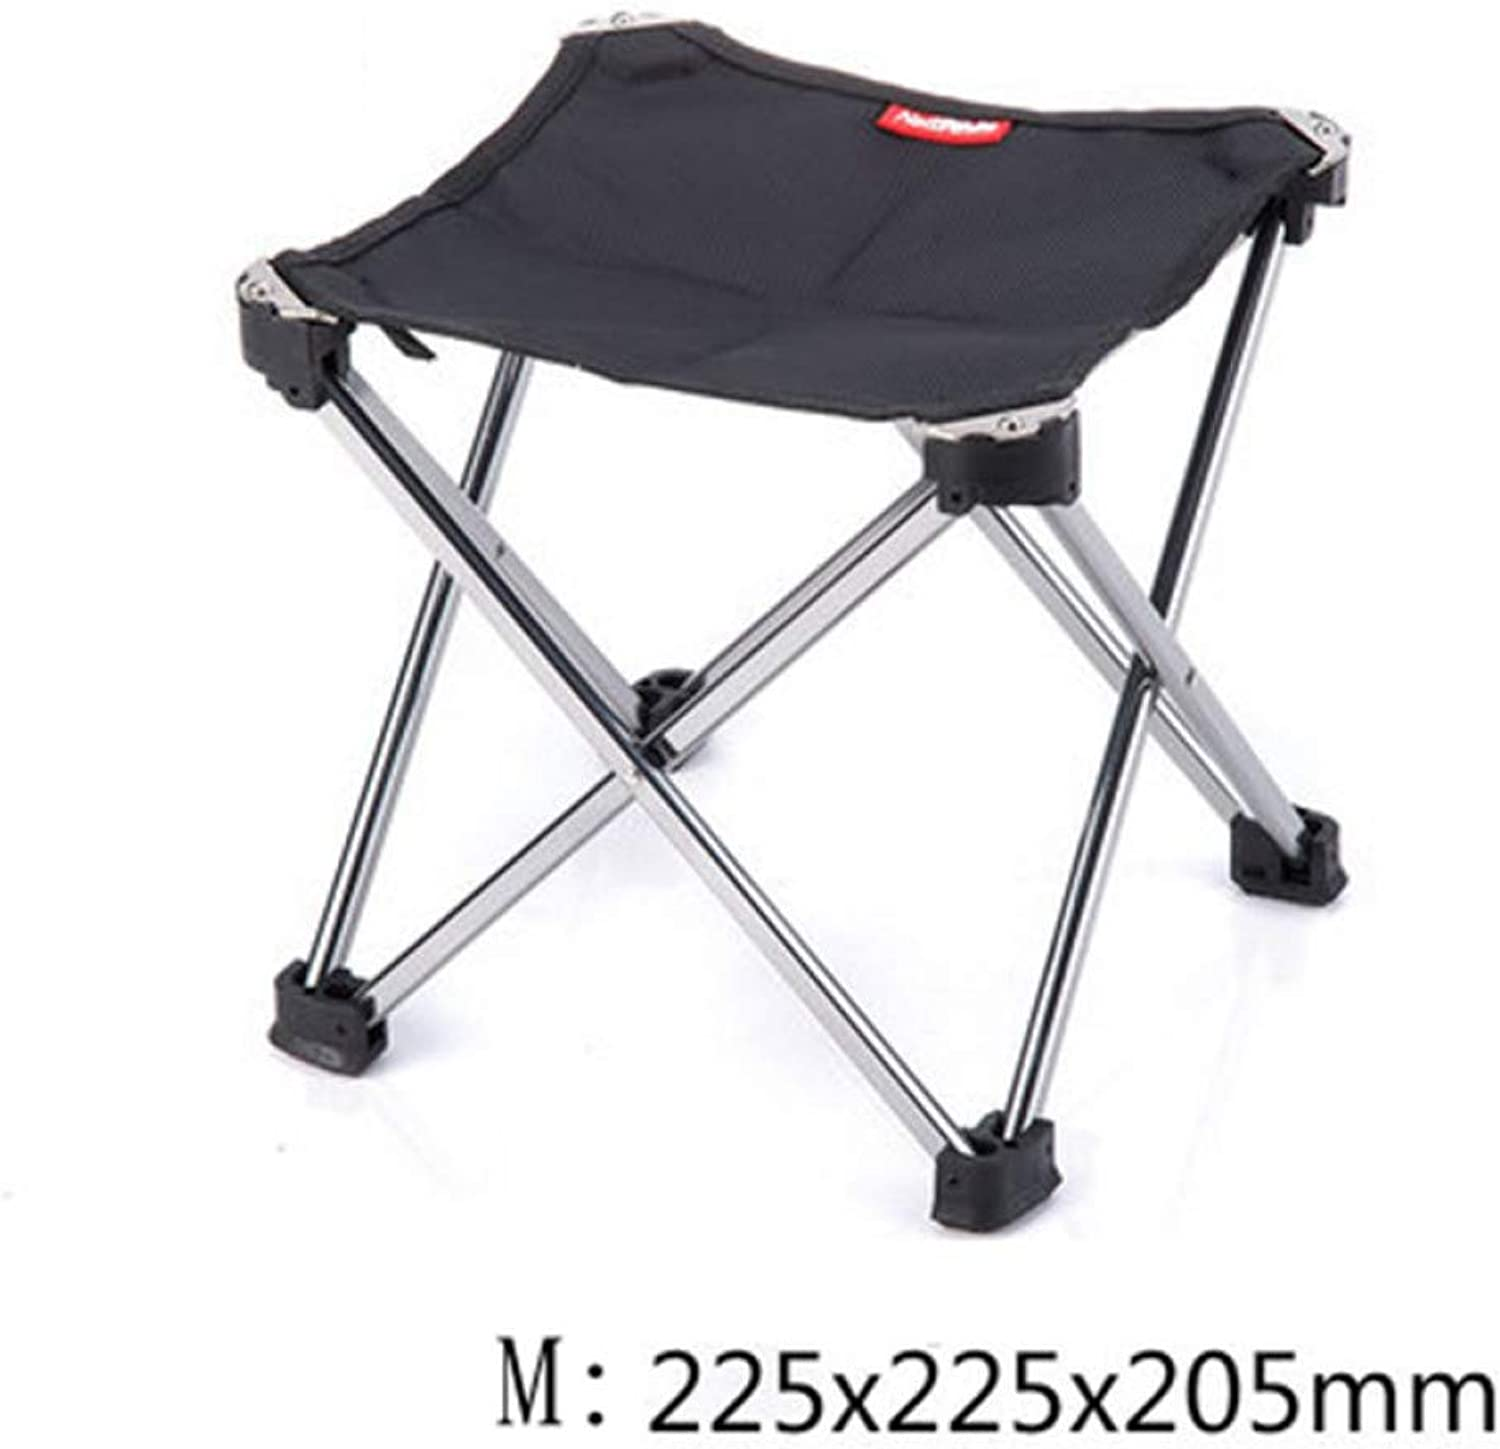 LFJXBF Outdoor Foldable Folding Ultra Light Fishing Picnic BBQ Garden Chair Tool Square Camping Chair